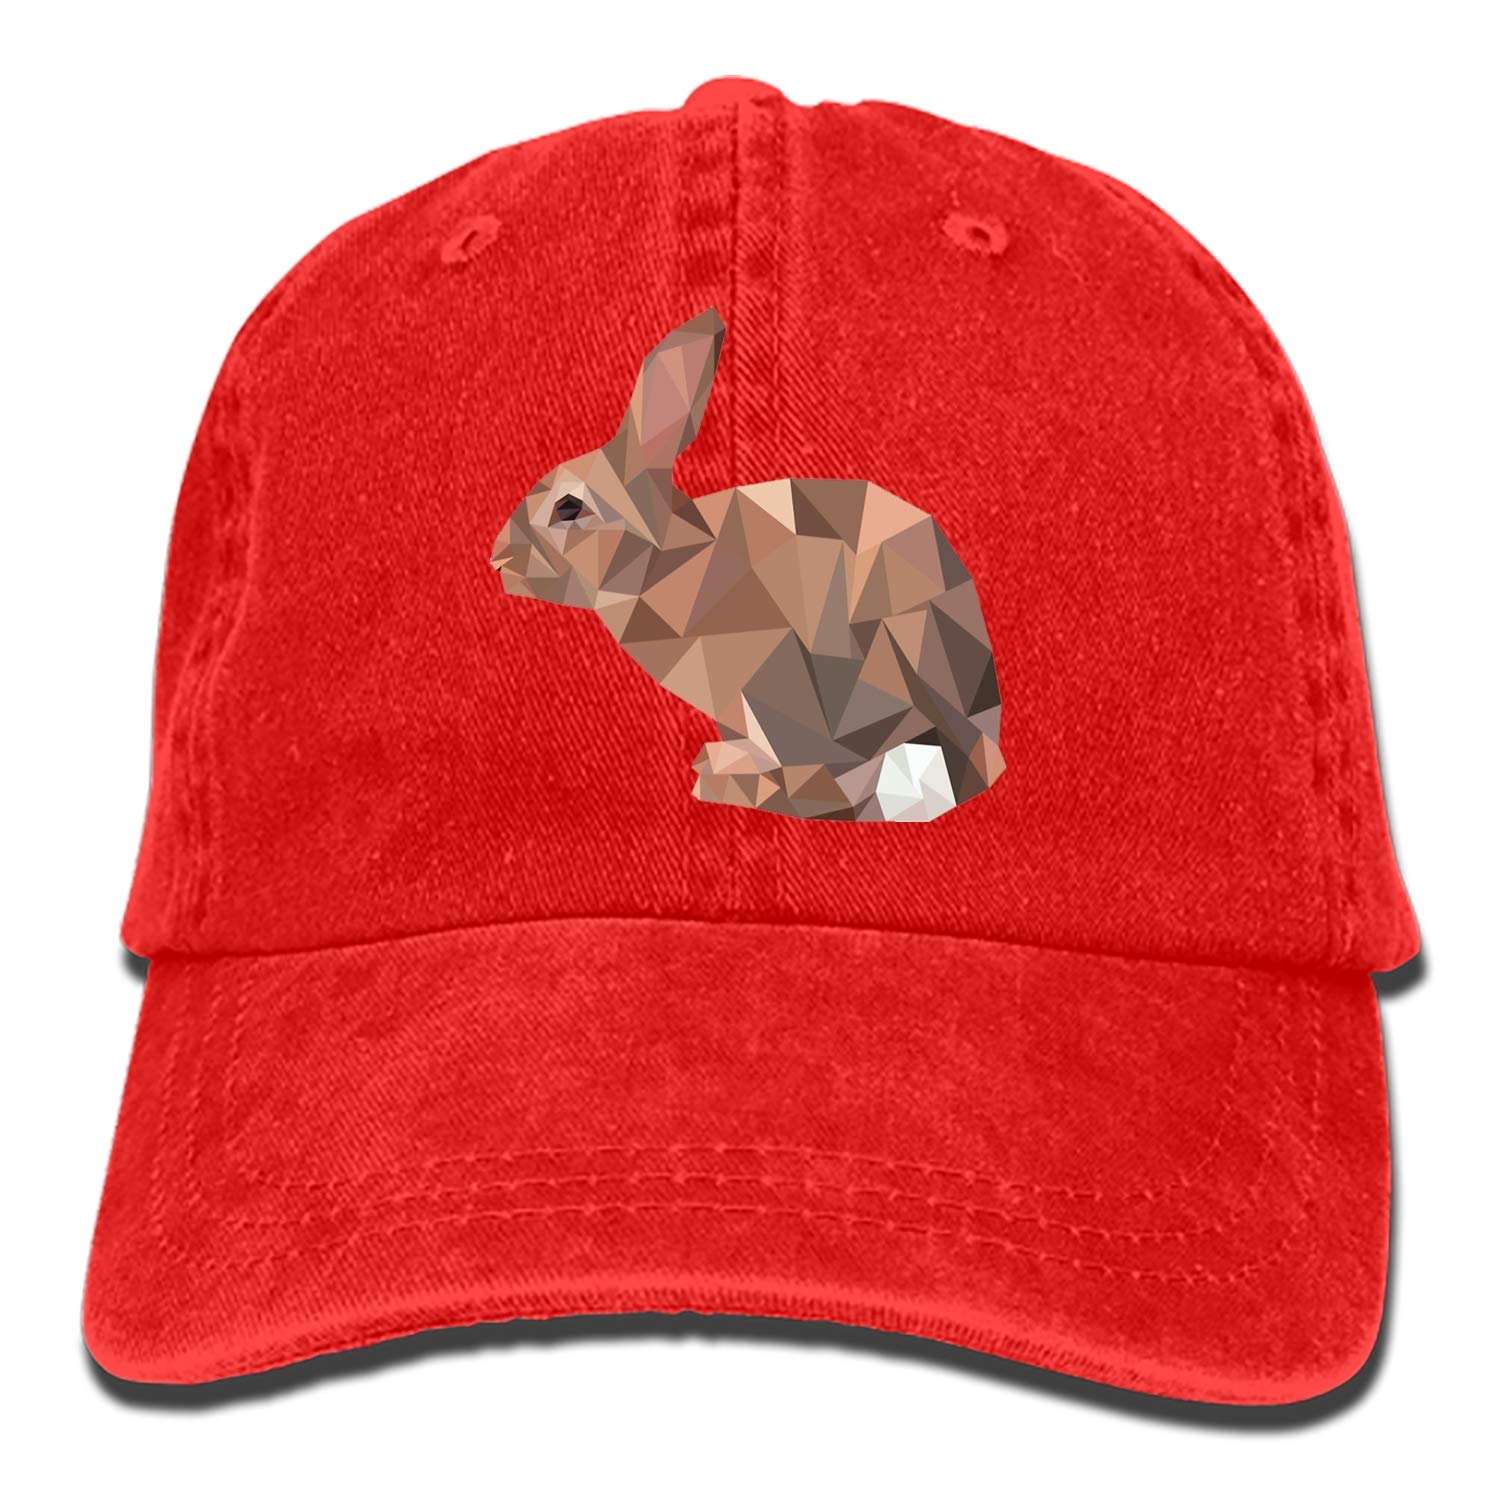 Cute Rabbit Denim Baseball Caps Hat Adjustable Cotton Sport Strap Cap for Men Women